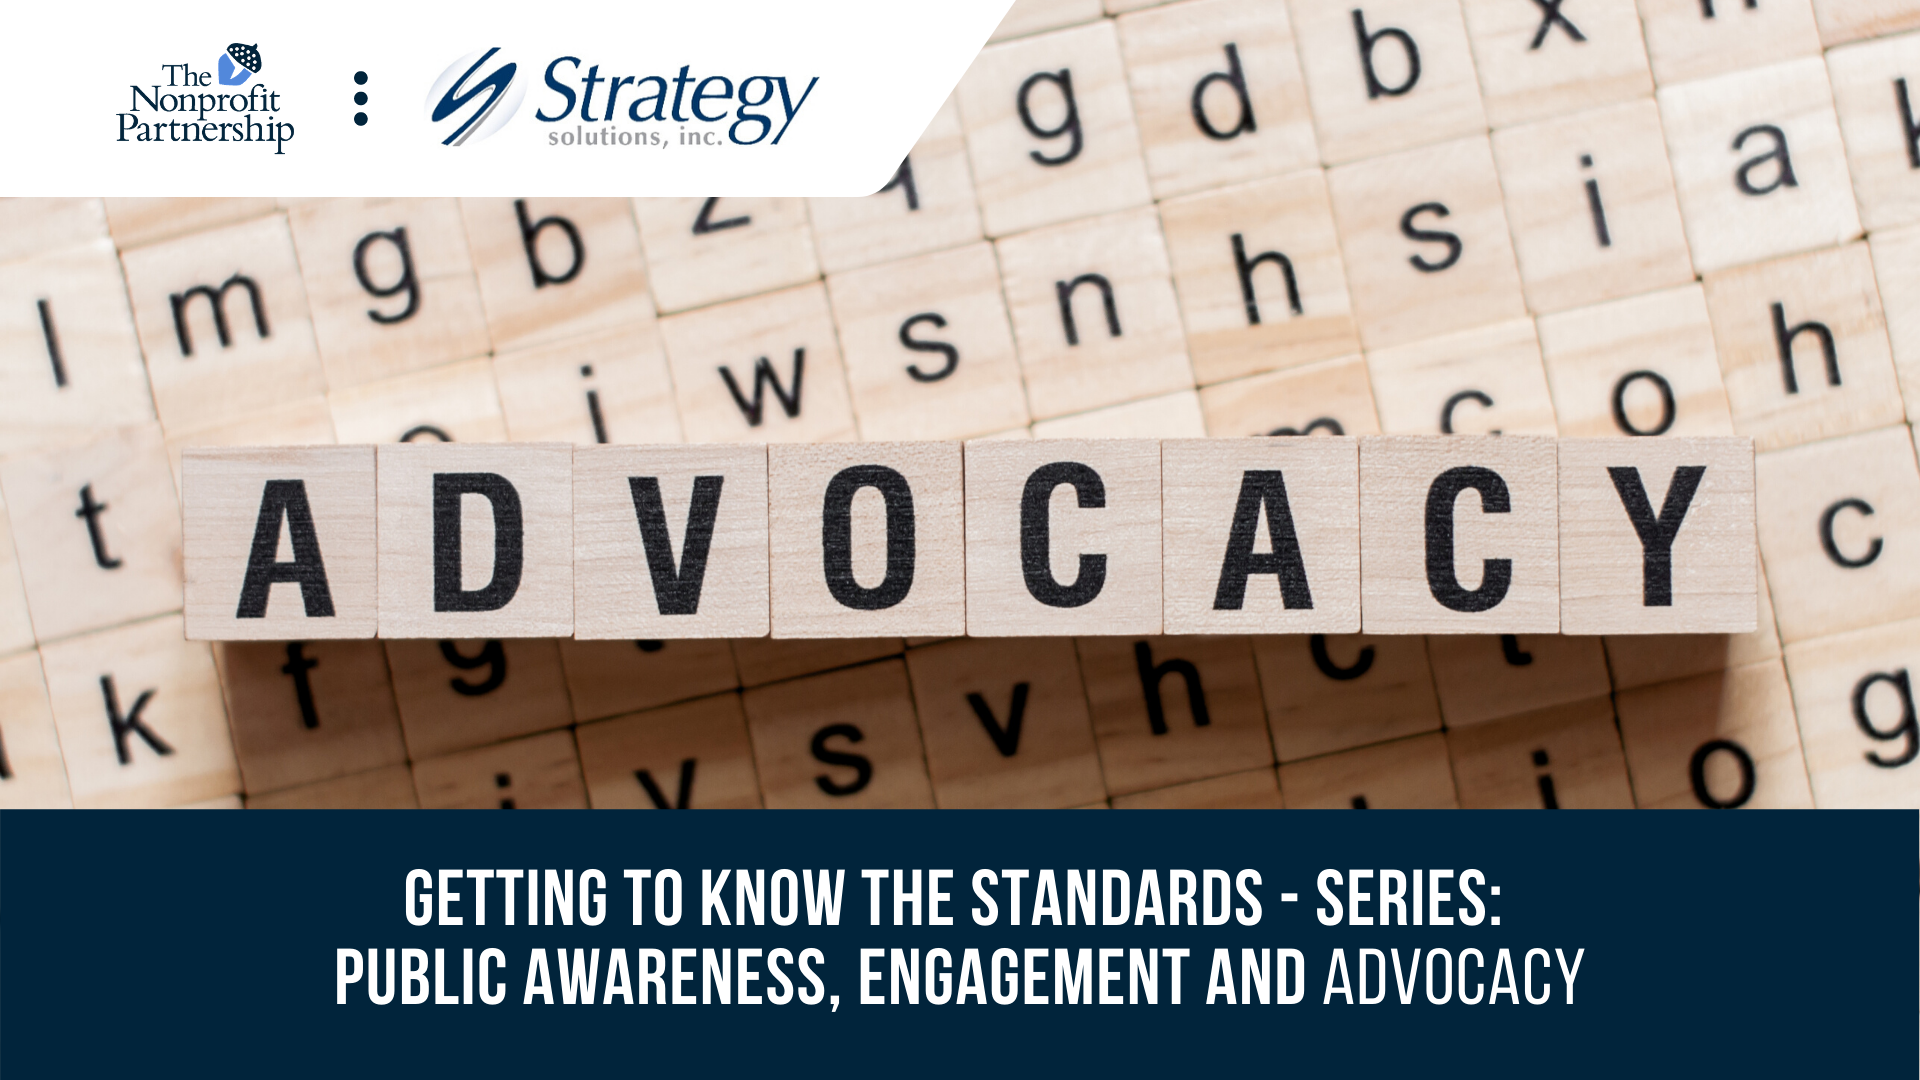 [Zoom Meeting] Getting to Know the Standards - Series: Public Awareness, Engagement and Advocacy